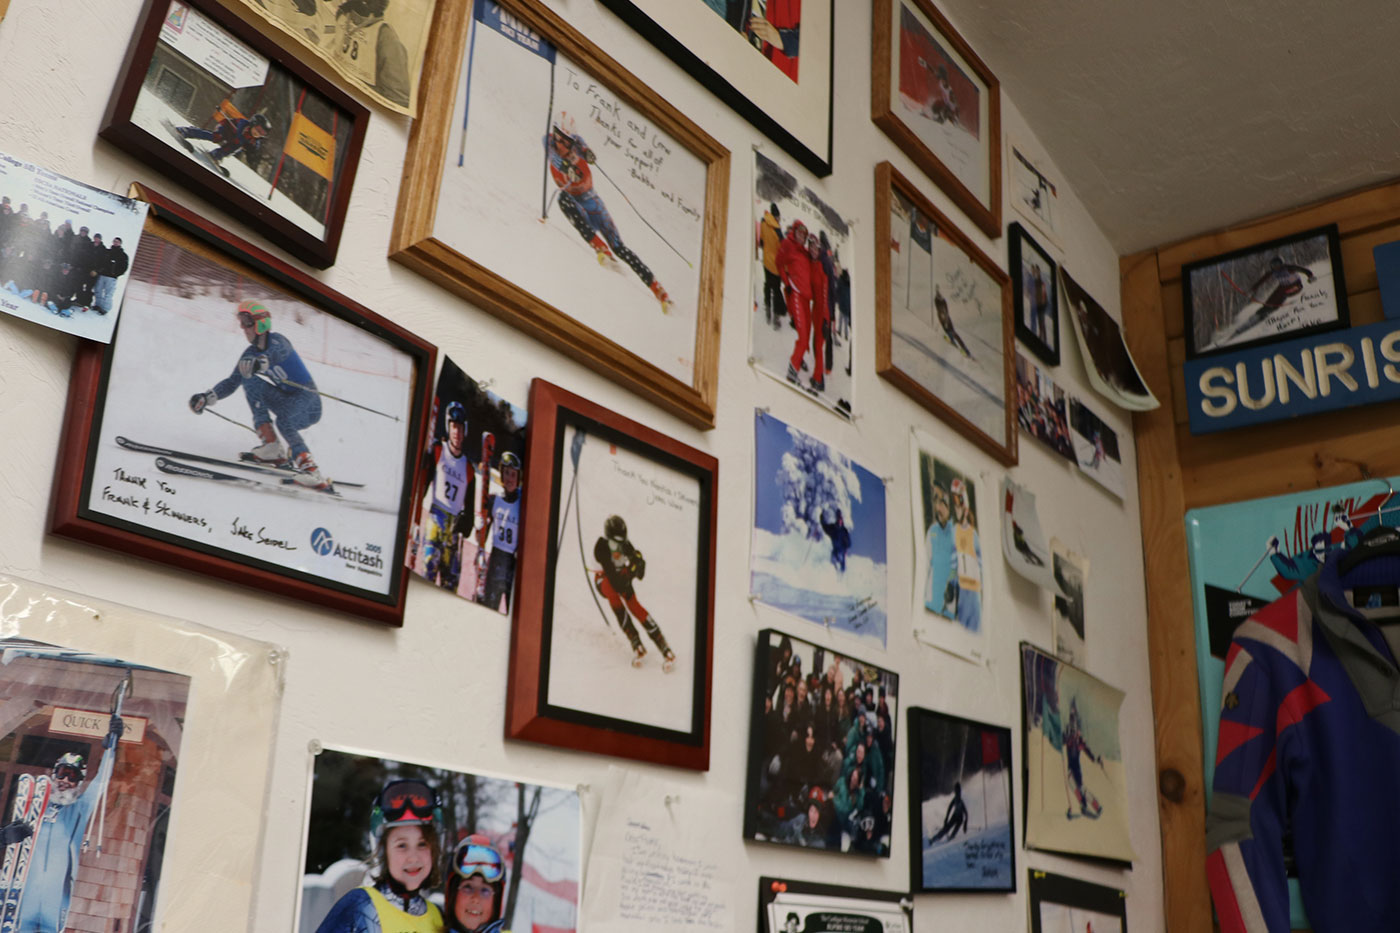 Awards and various signed photos of current and past alpine racers